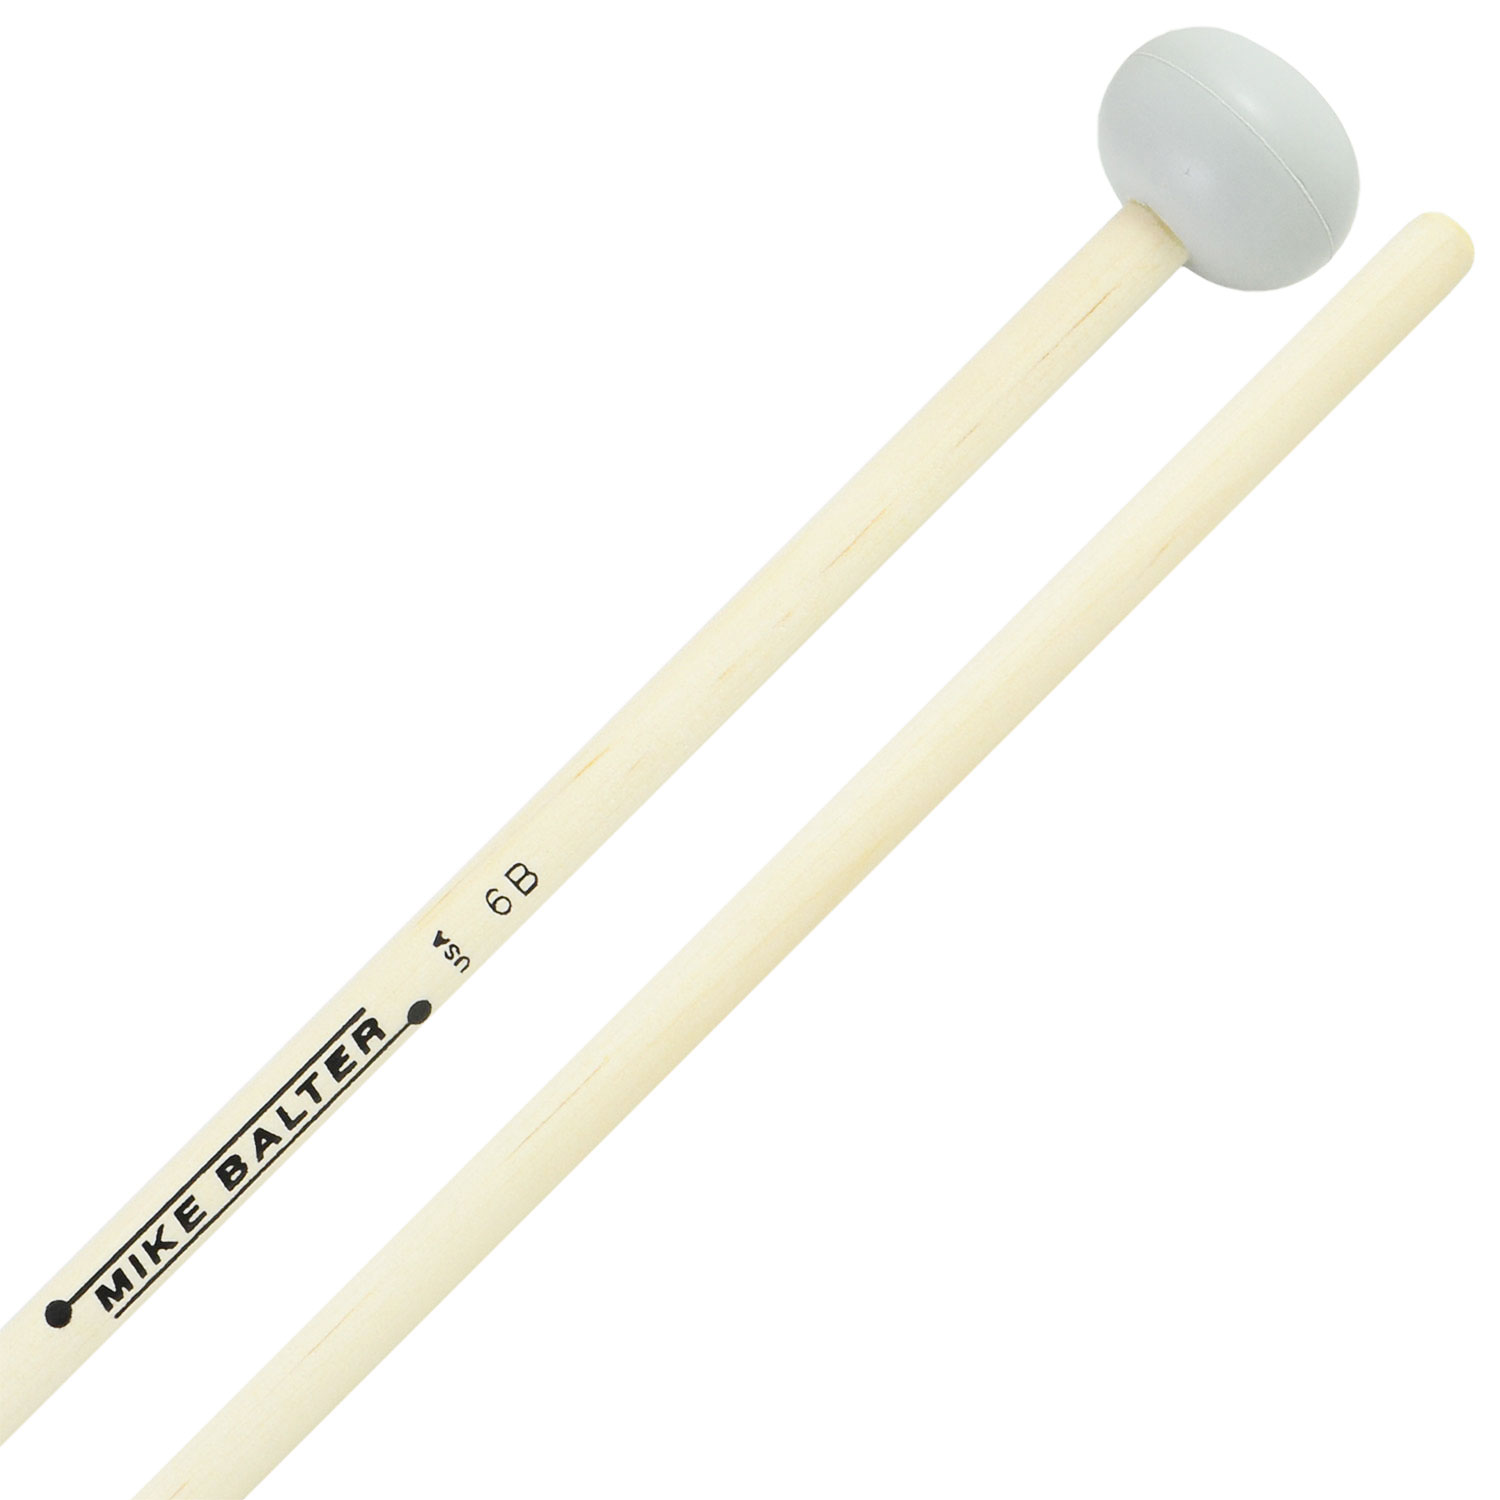 Mike Balter Unwound Hard Rubber Xylophone Mallets with Birch Handles